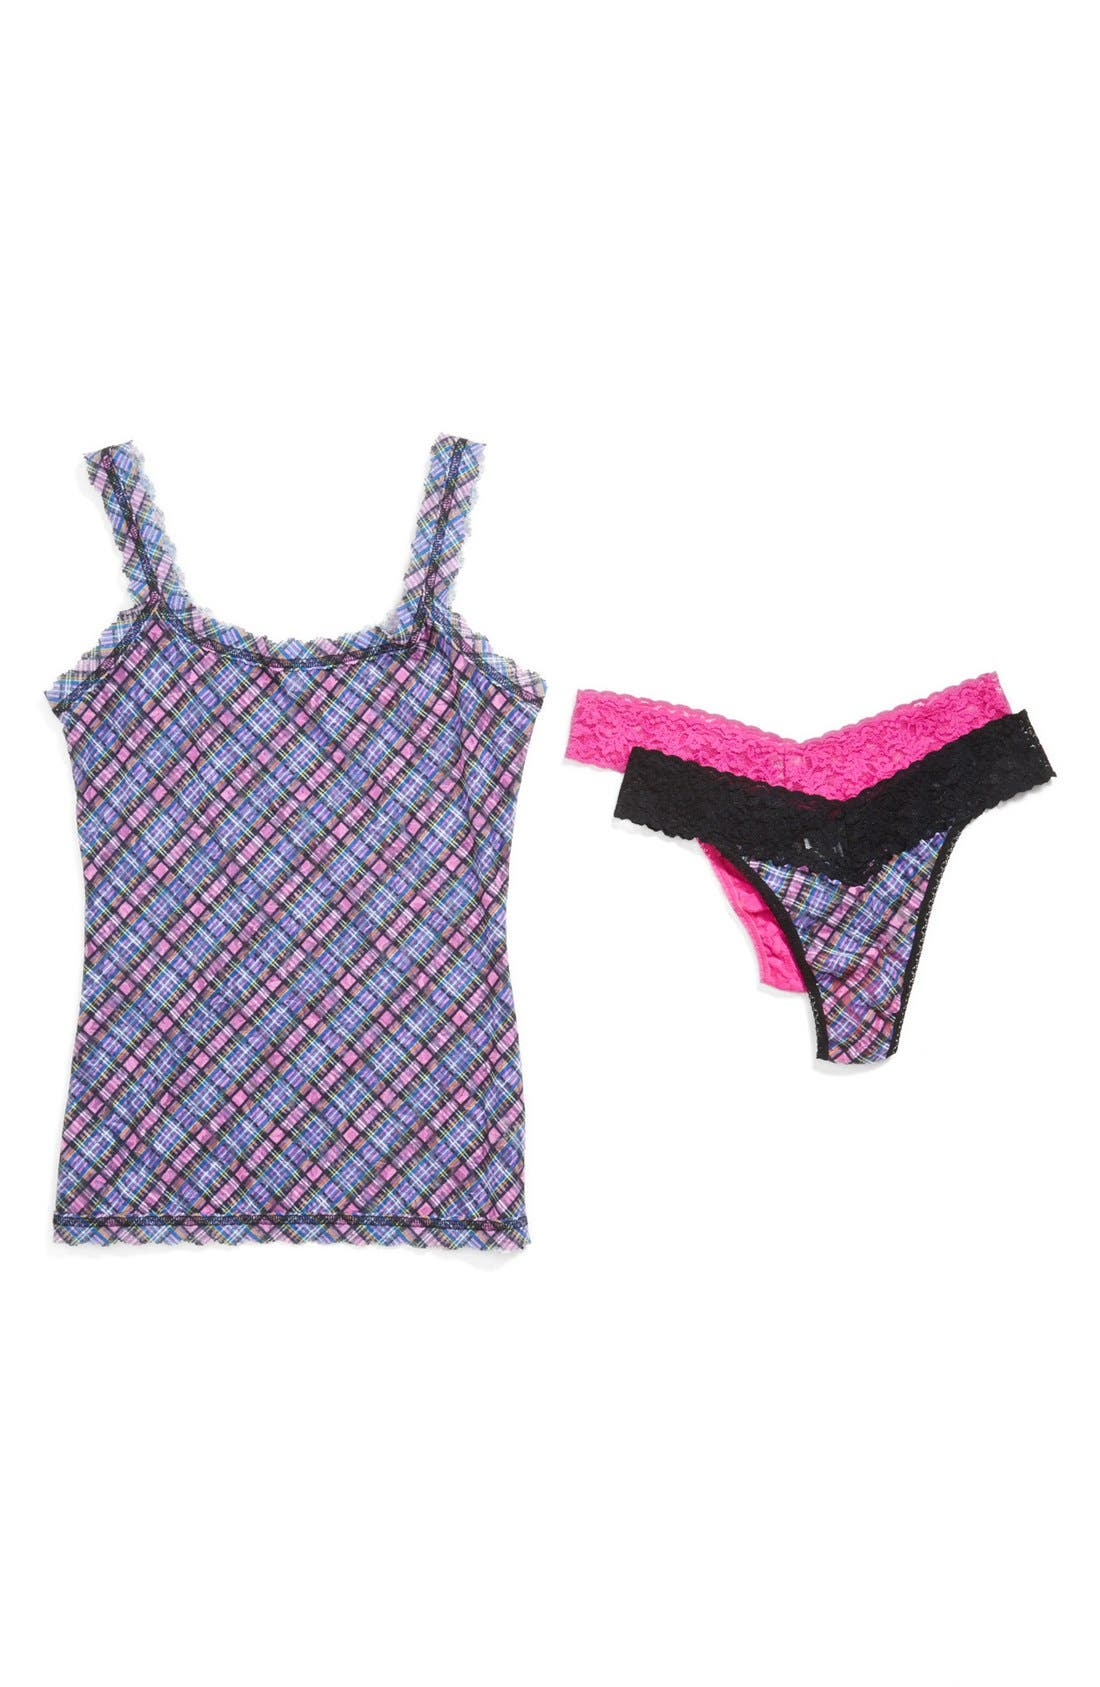 Main Image - Hanky Panky Camisole & Original Rise Thong Set (Nordstrom Exclusive) ($102 Value)